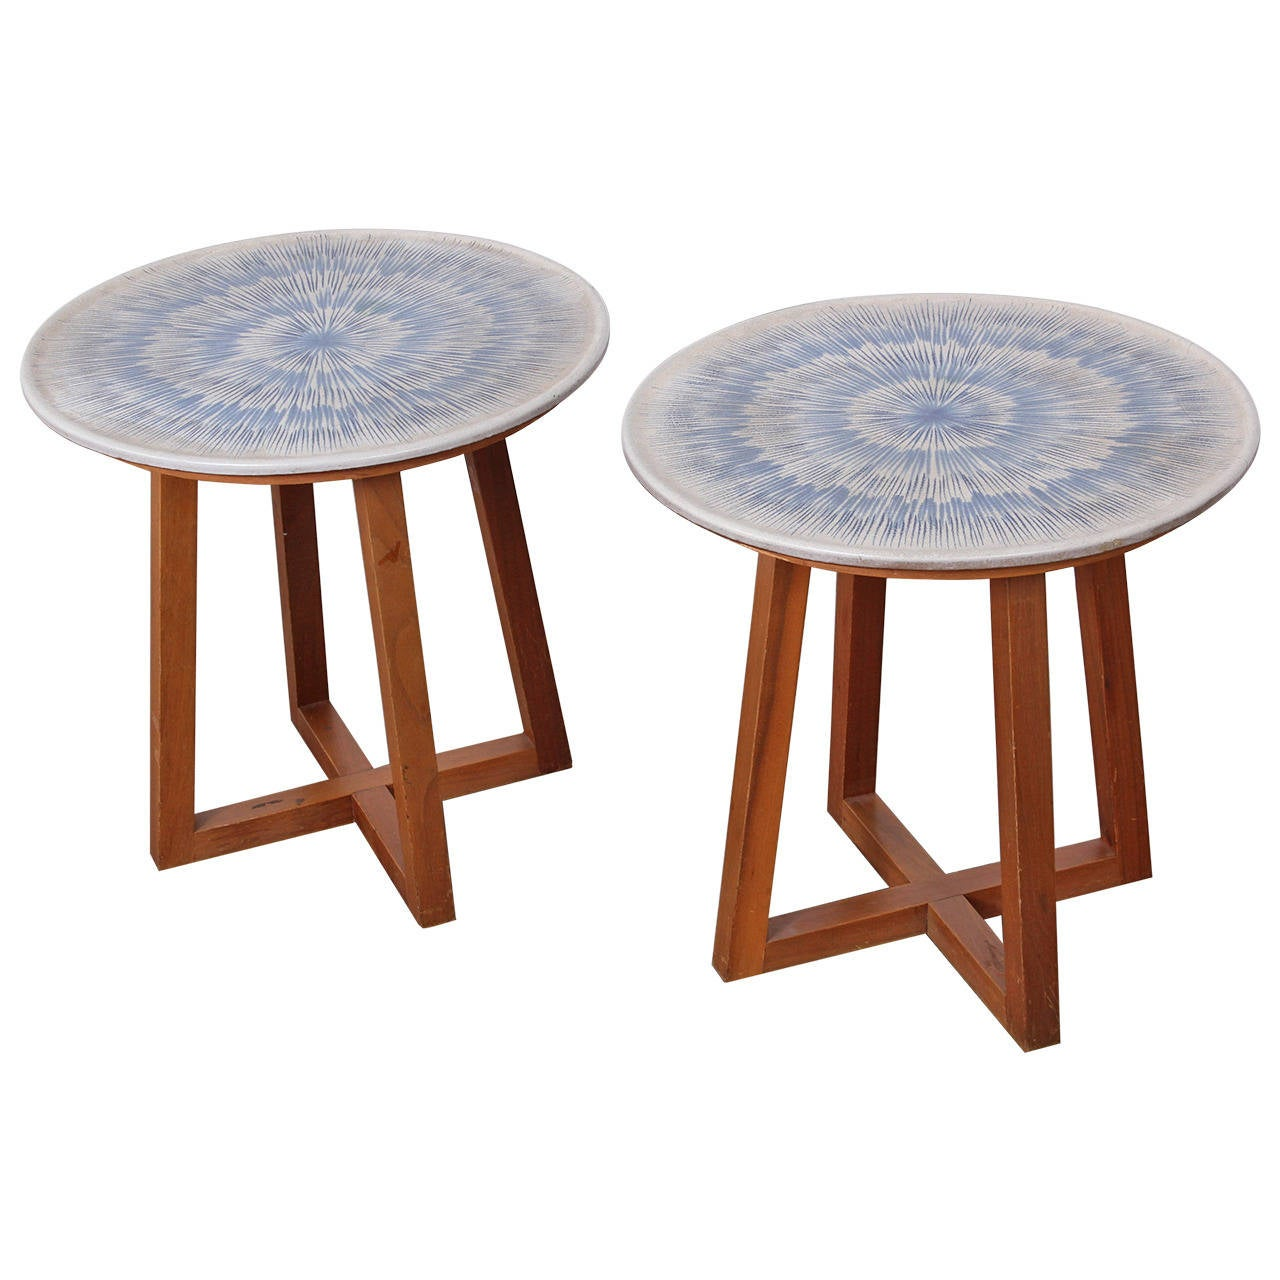 Awesome Rare Pair Of Ceramic Tables By Lee Rosen For Design Technics 1